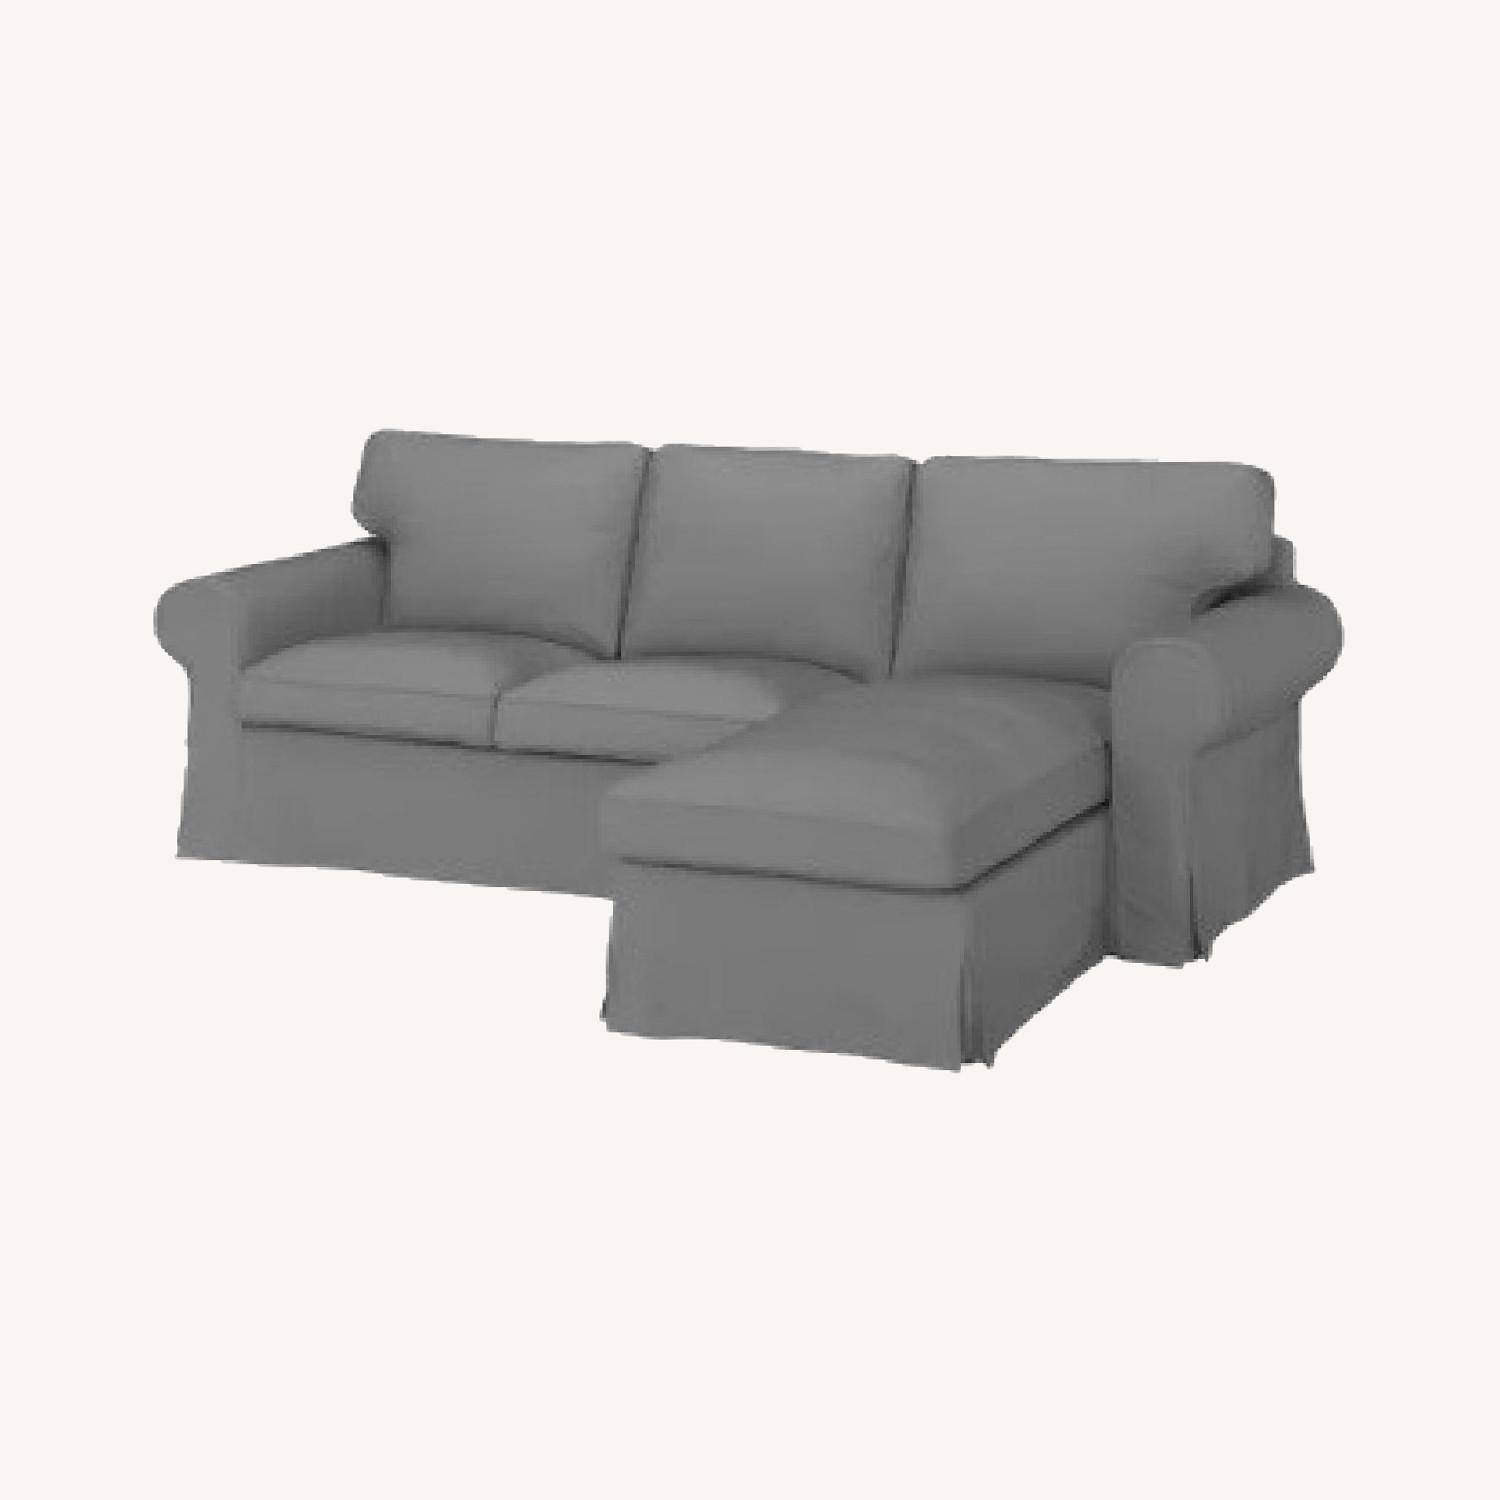 IKEA Grey 3-Seat Sofa with Chaise - image-0